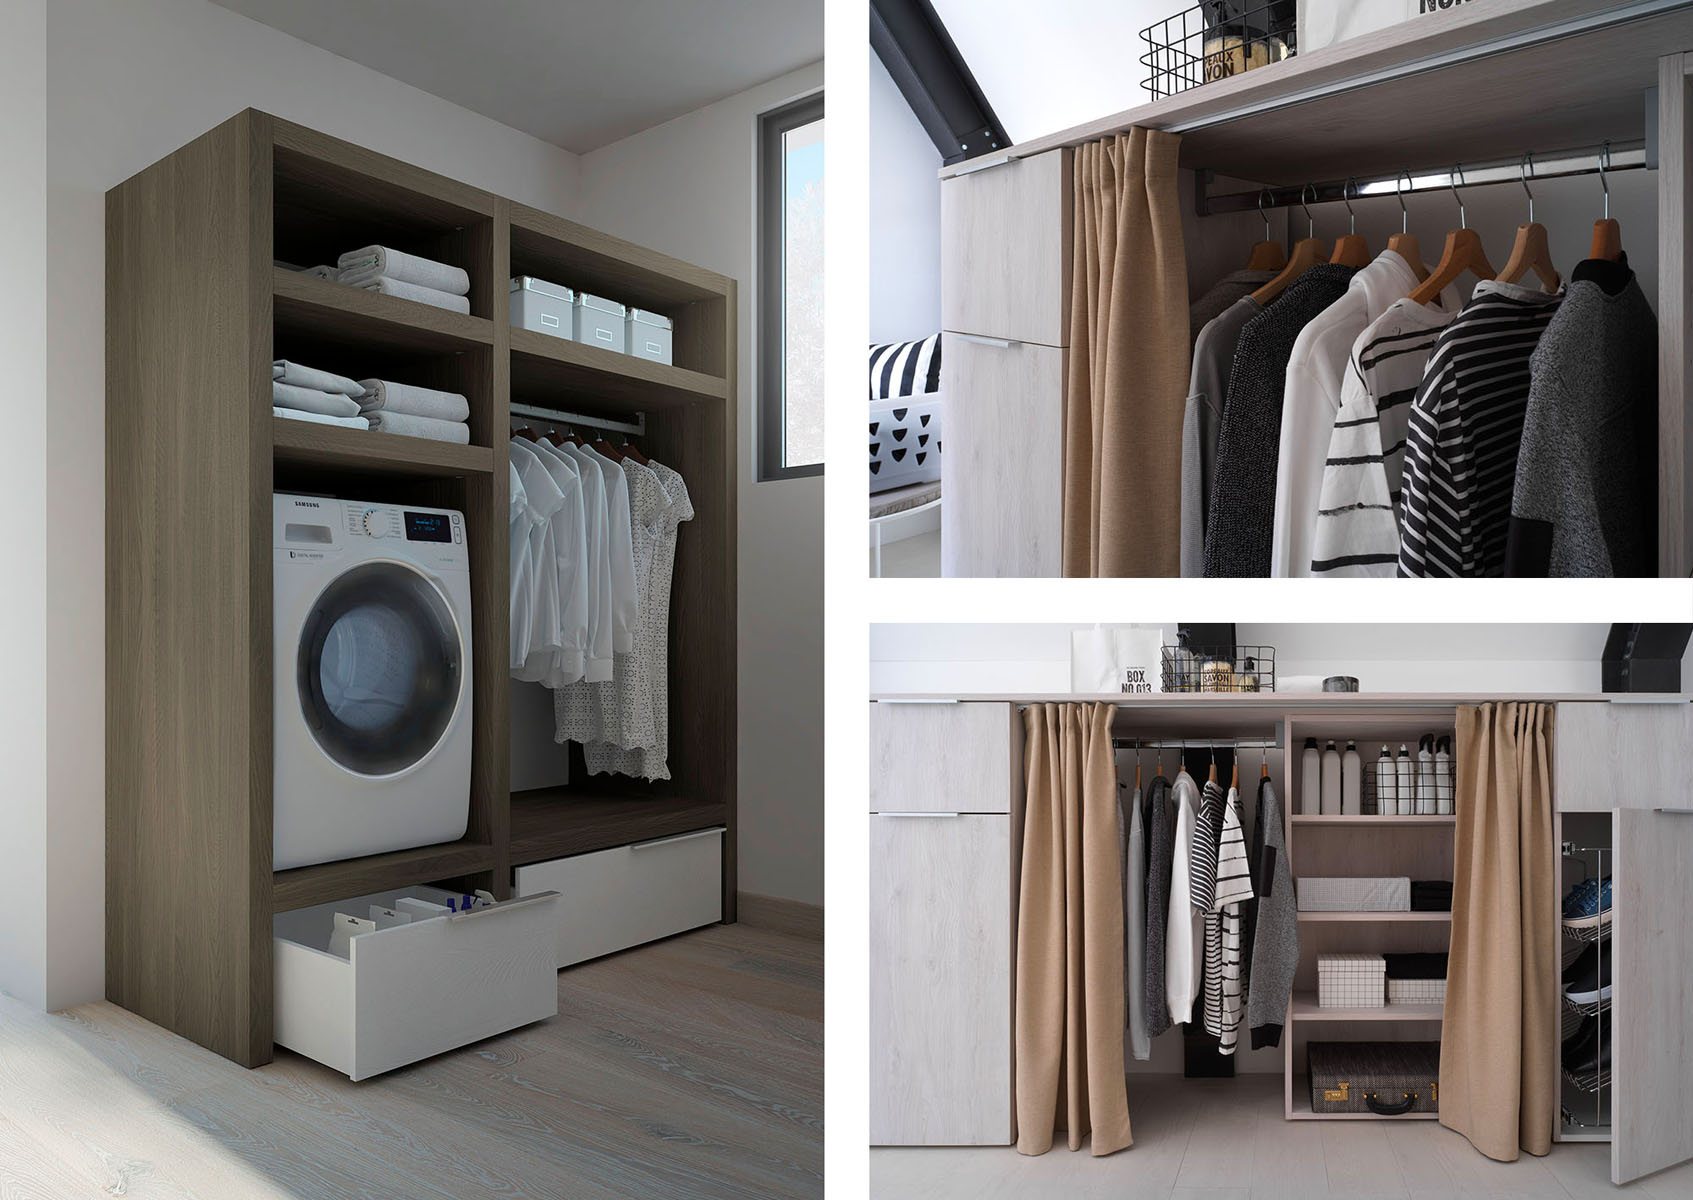 Indispensable Accessories For A Bathroom Laundry Ideagroup Blog